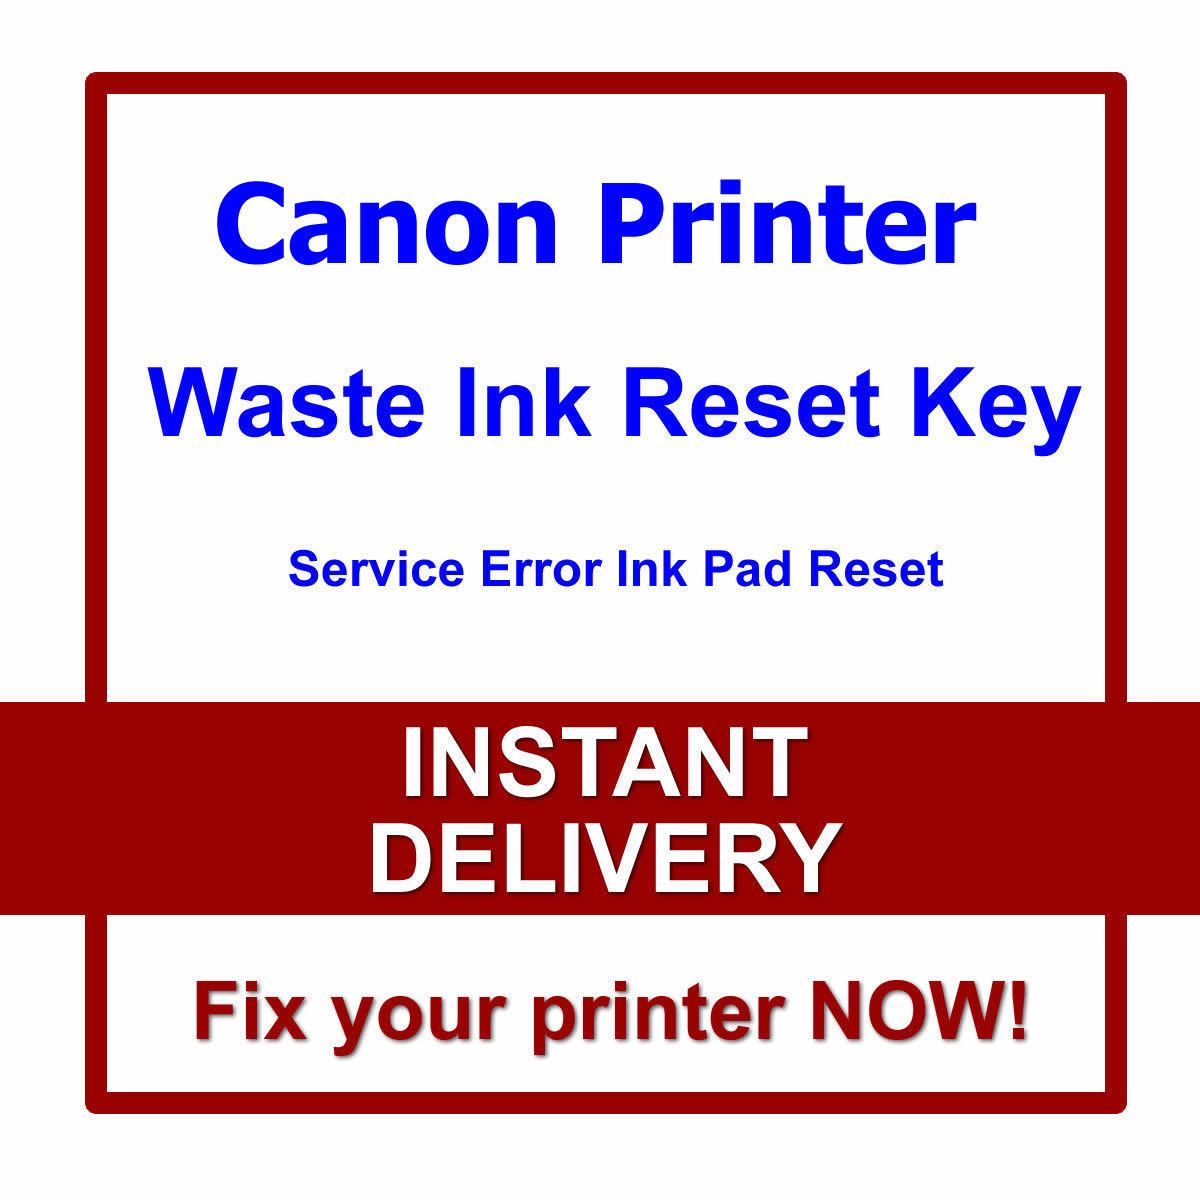 7 9 GBP - Canon G2000, G2100, G2400, G2900 Waste Ink